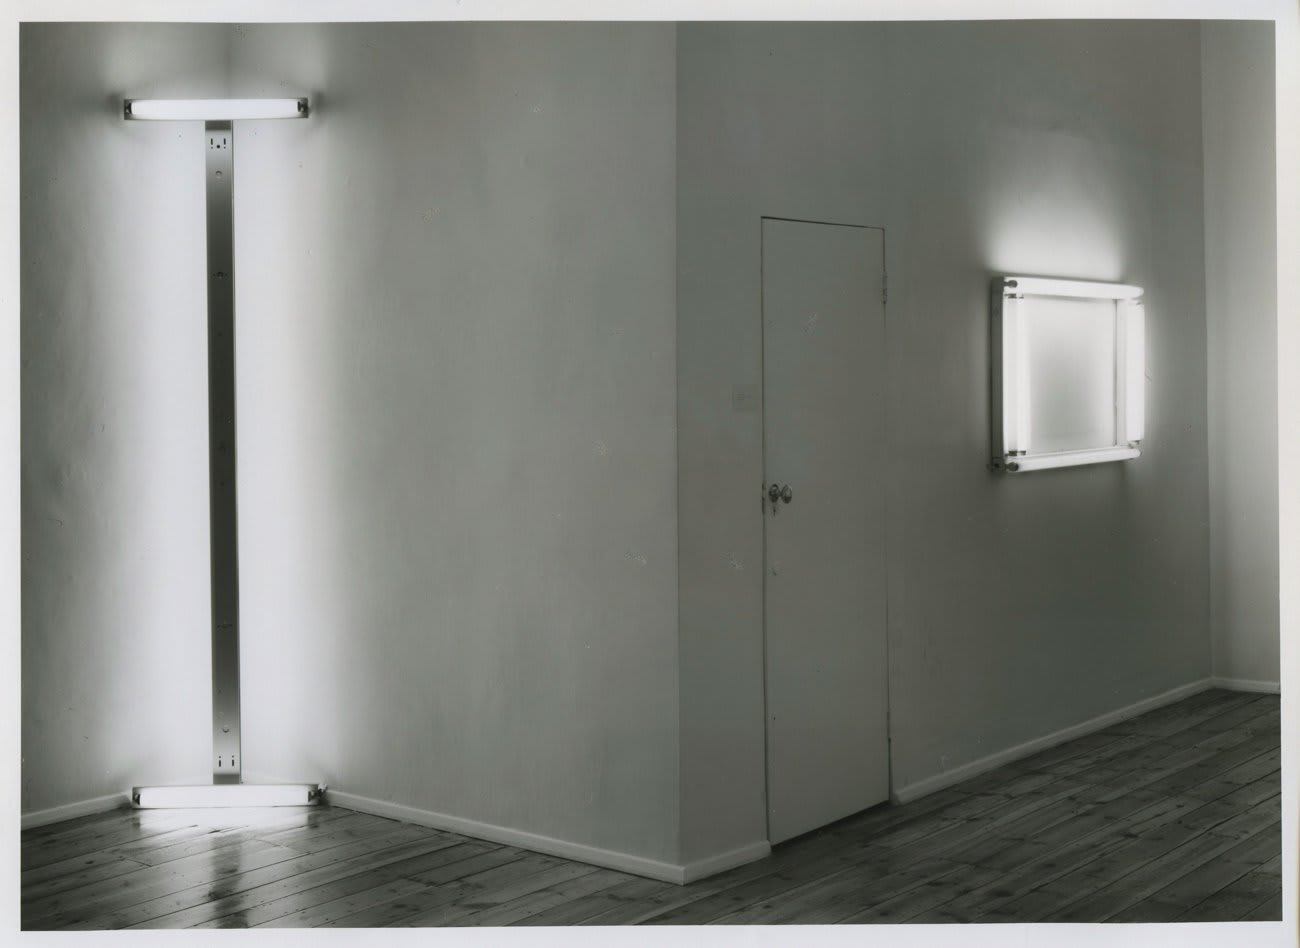 Dan Flavin: Early Works, installation view, May 1988